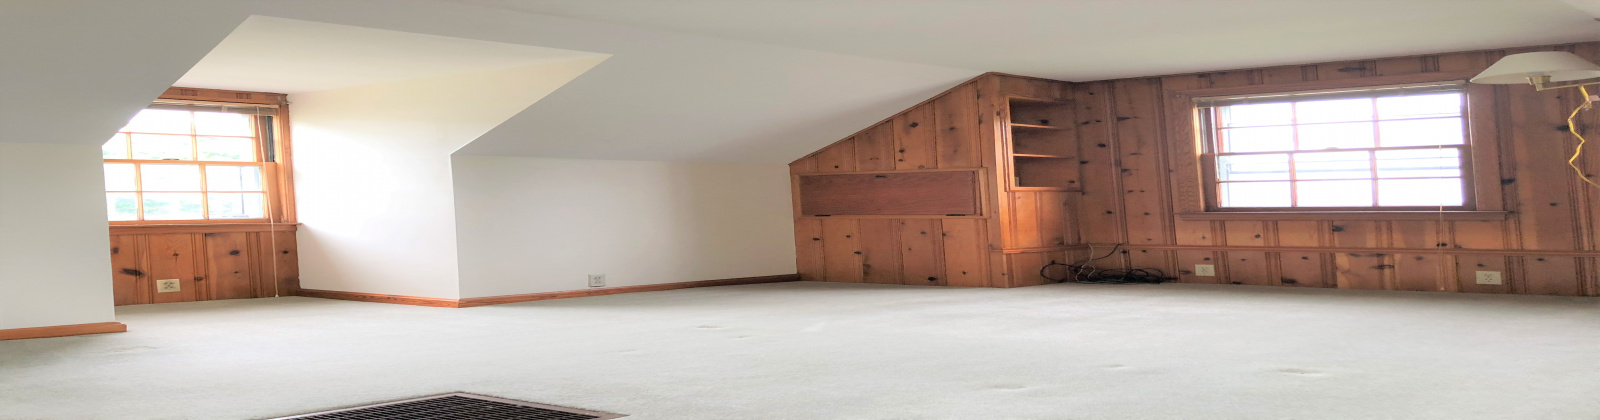 105 Sunnyside Drive Athens, Ohio, 3 Bedrooms Bedrooms, ,2 BathroomsBathrooms,Apartment,For Rent,Sunnyside,1057